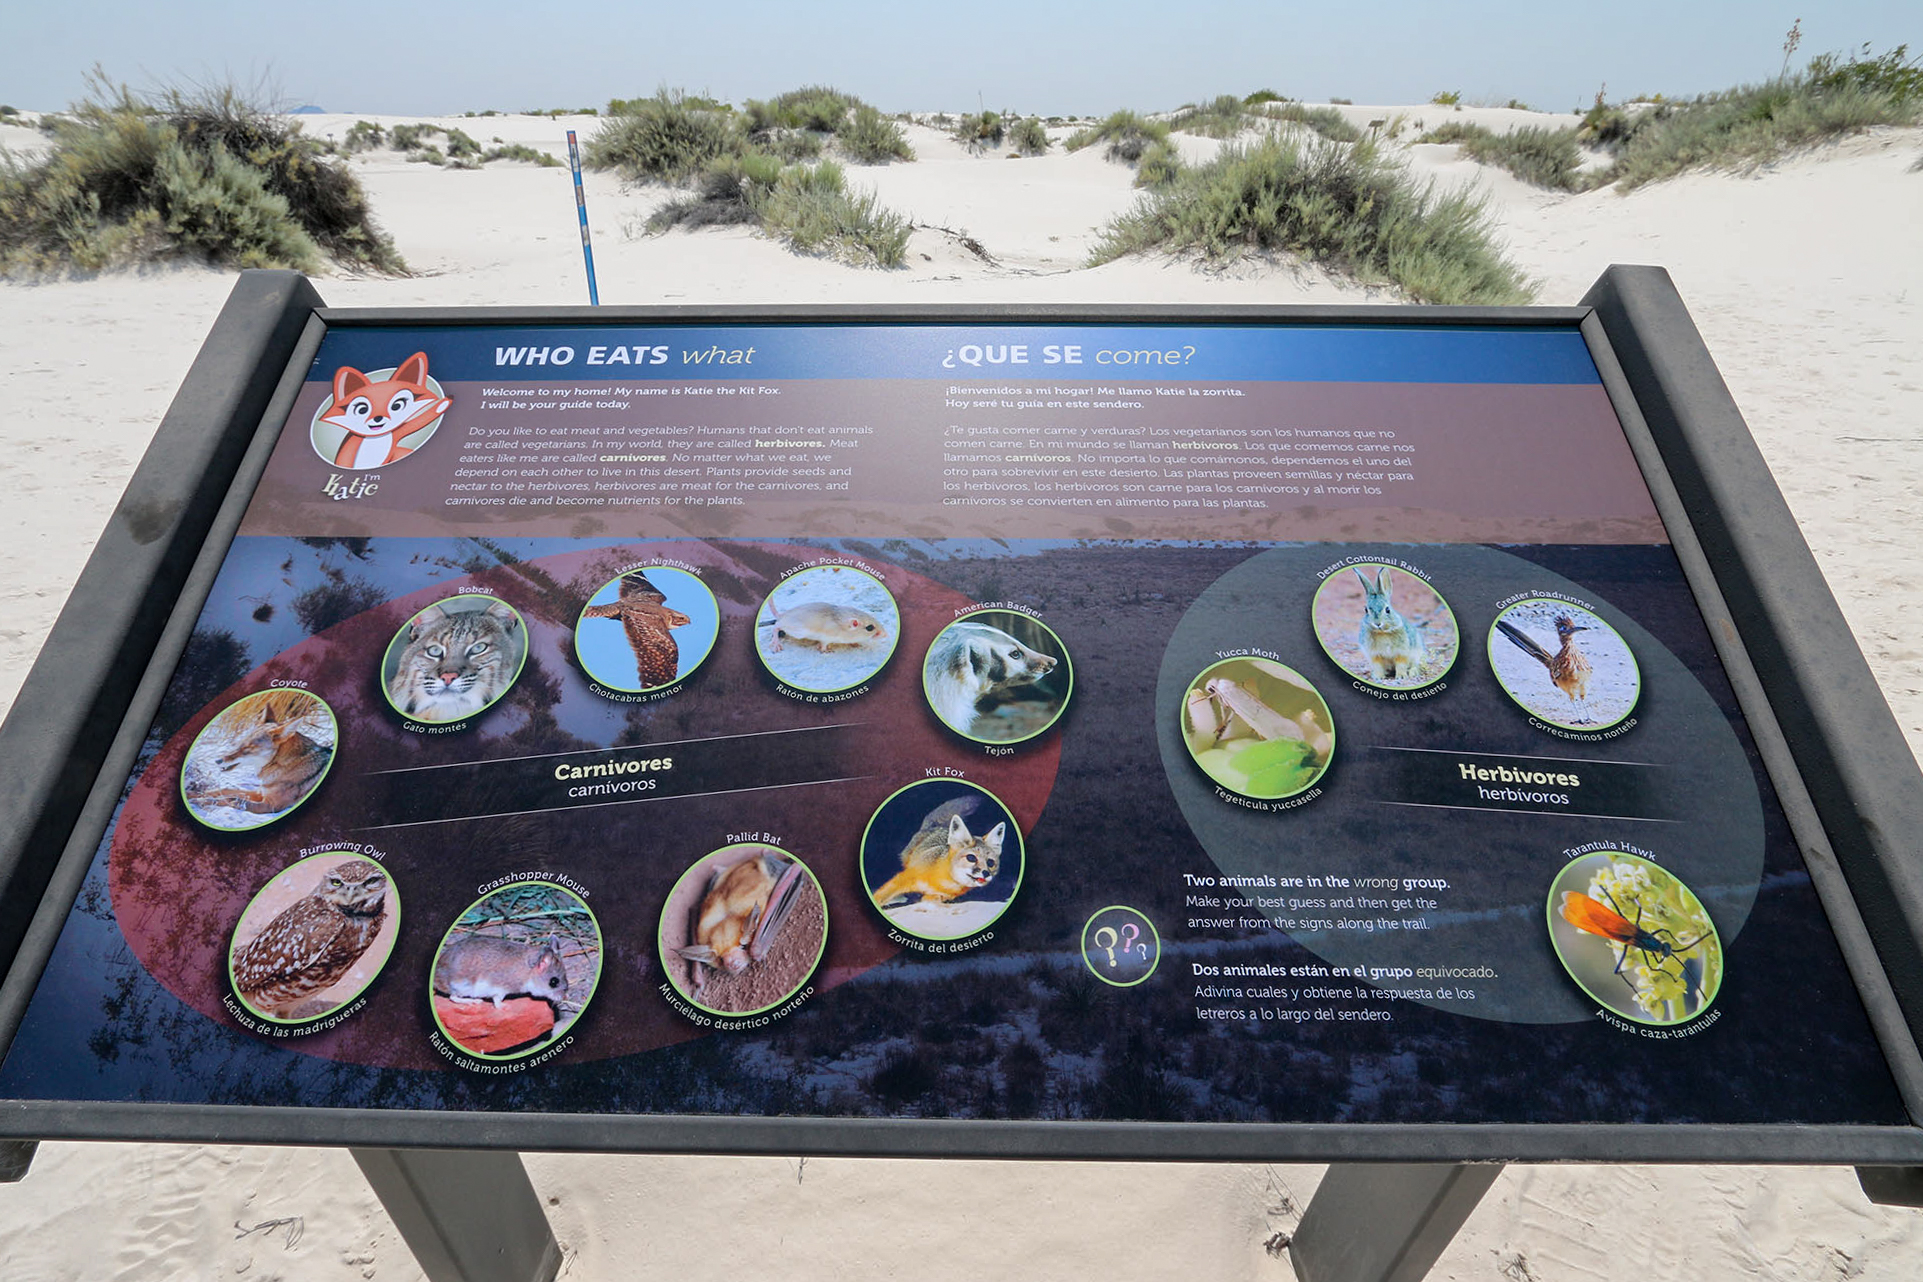 Katie the Kit Fox interpretive trail sign along the Dune Life Nature Trail.